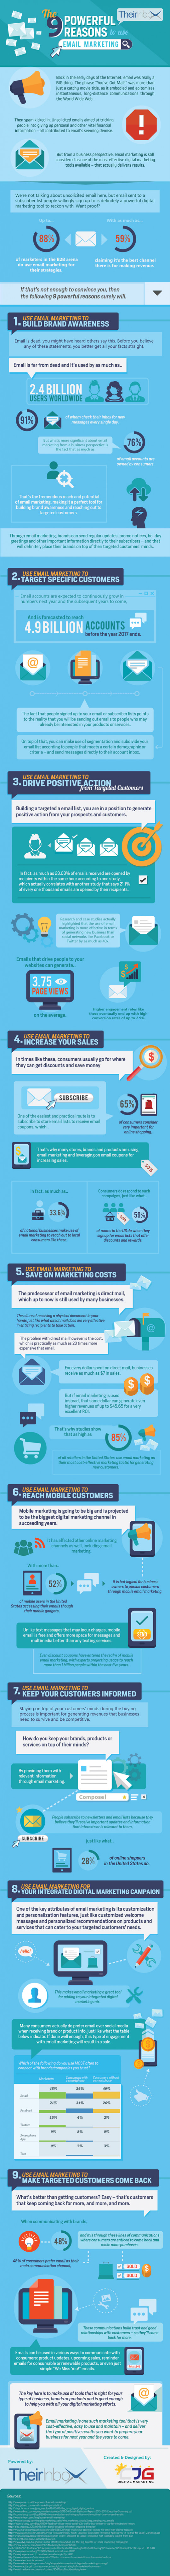 9 Powerful Reasons to Use Email Marketing